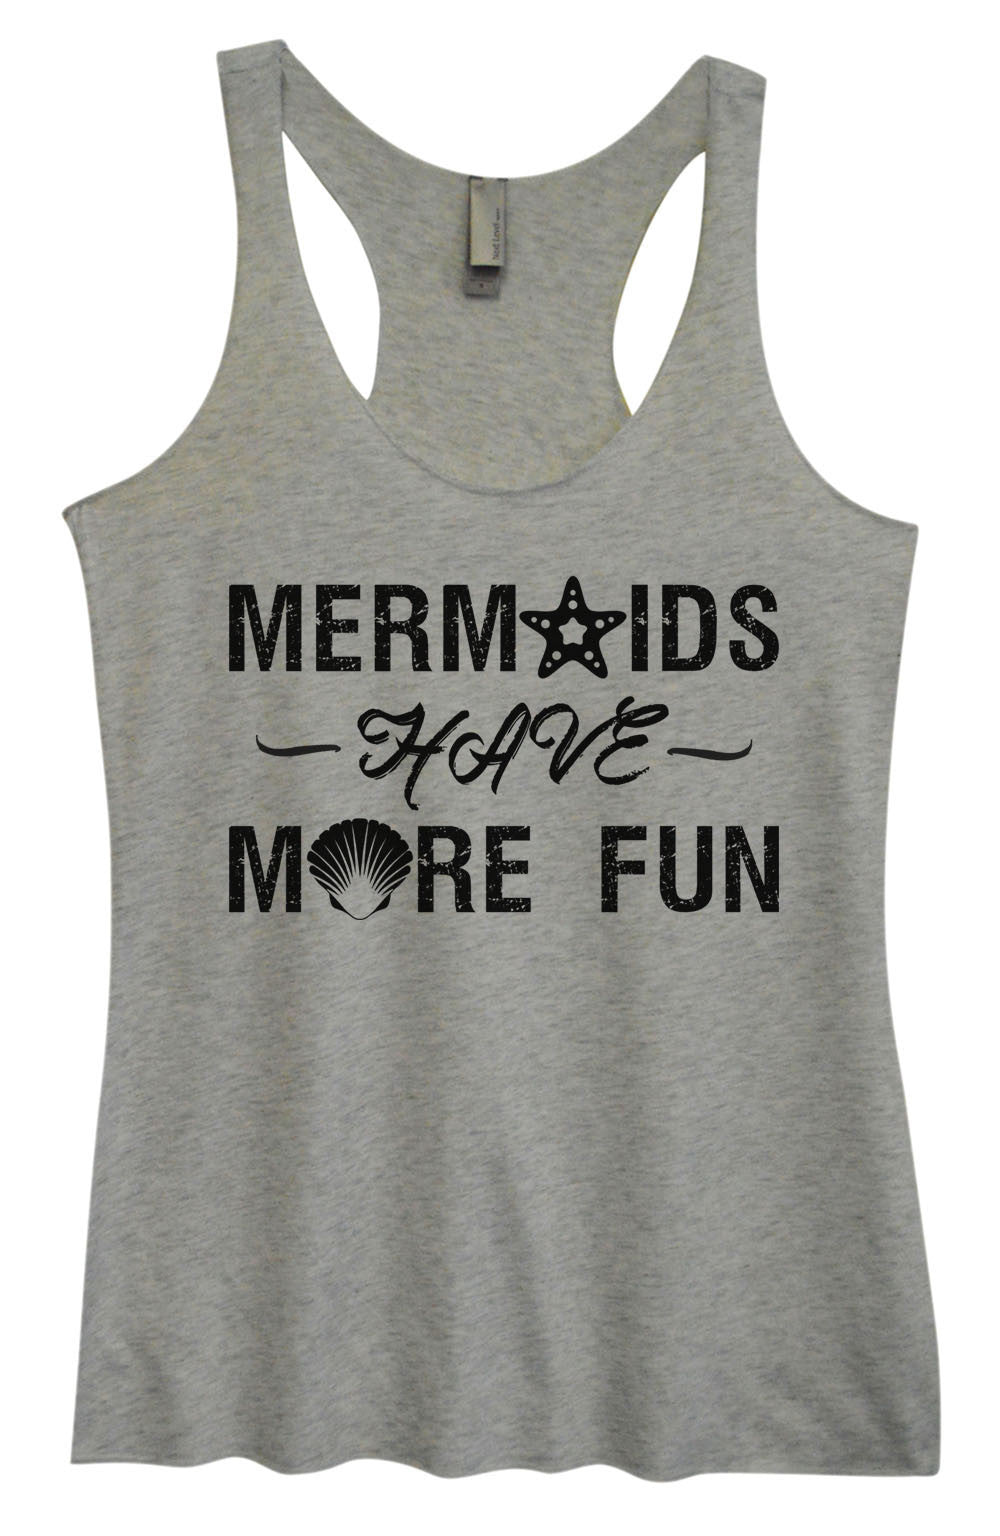 Womens Fashion Triblend Tank Top - Mermaids Have More Fun - Tri-1468 - Funny Shirts Tank Tops Burnouts and Triblends  - 2